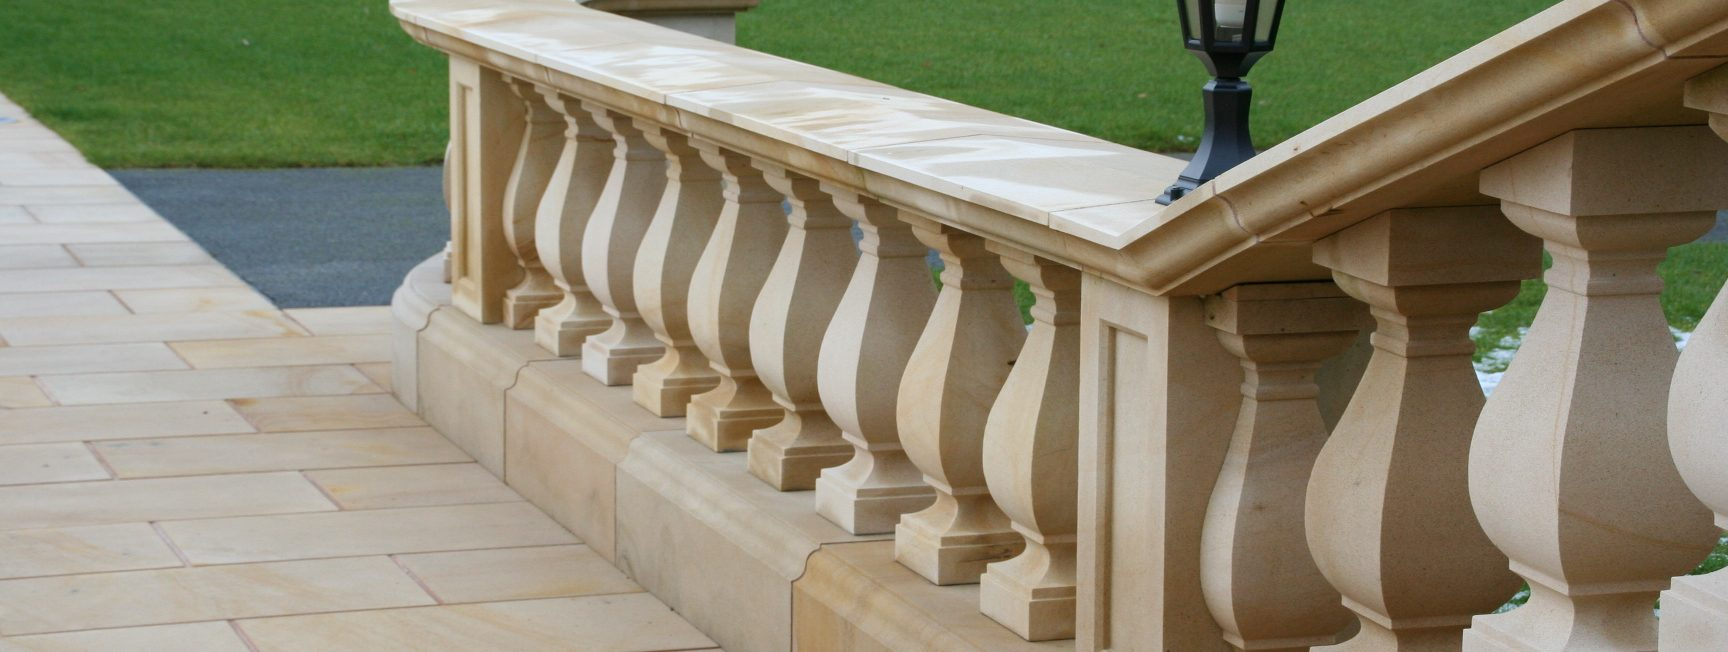 Sandstone balusters by Cumbrian Stone